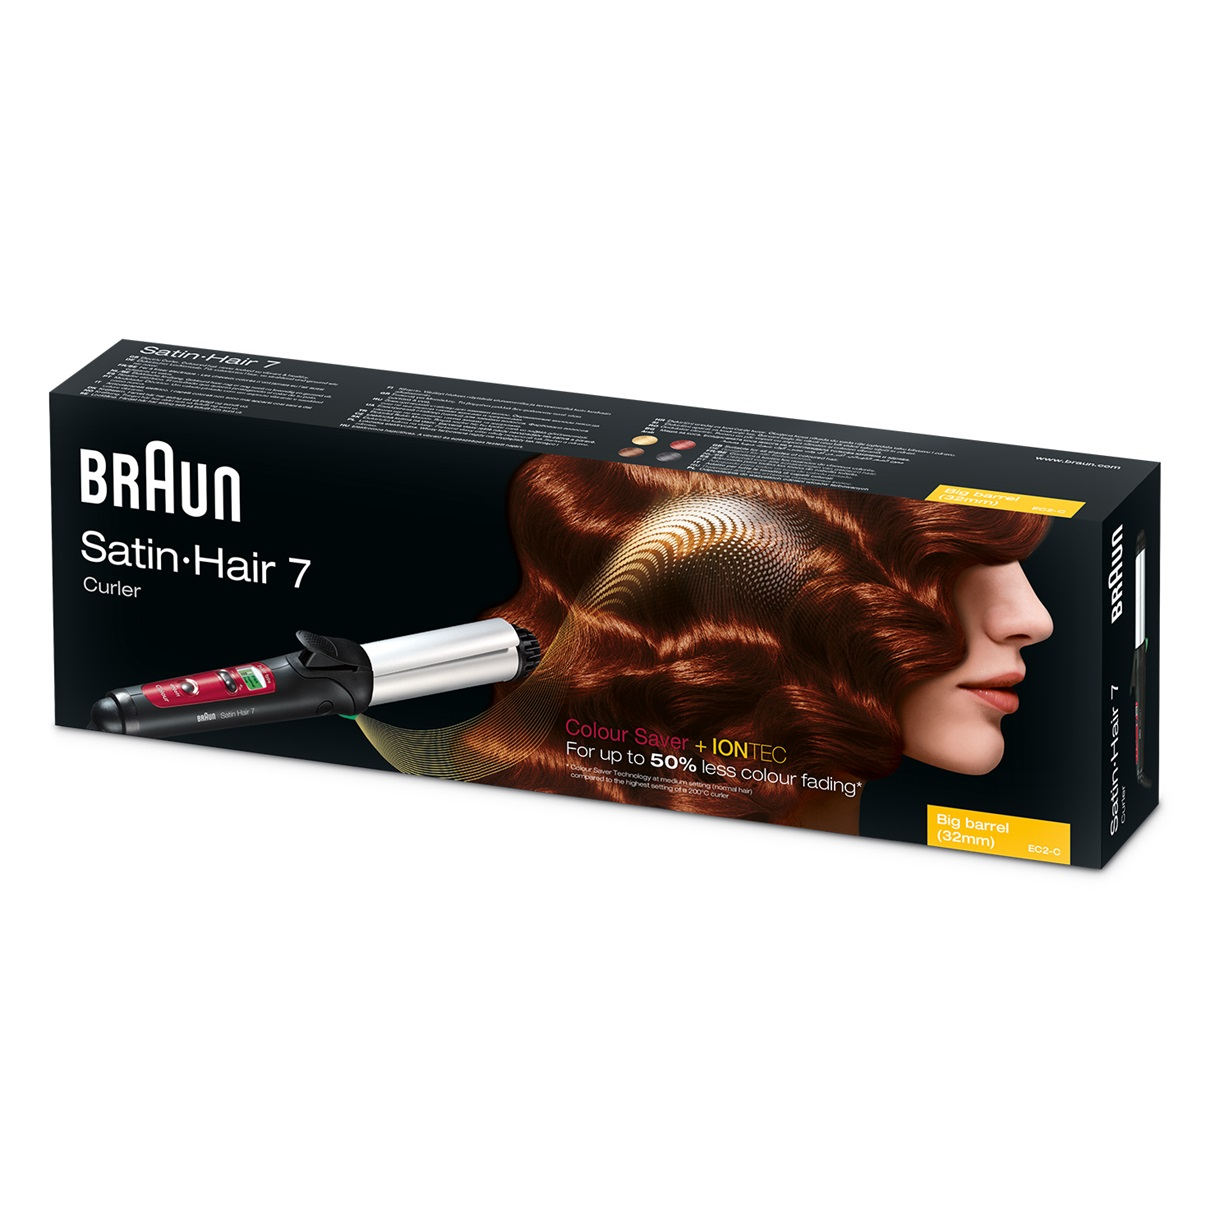 Braun Satin Hair 7 CU750 Curler with Colour Saver technology - packaging